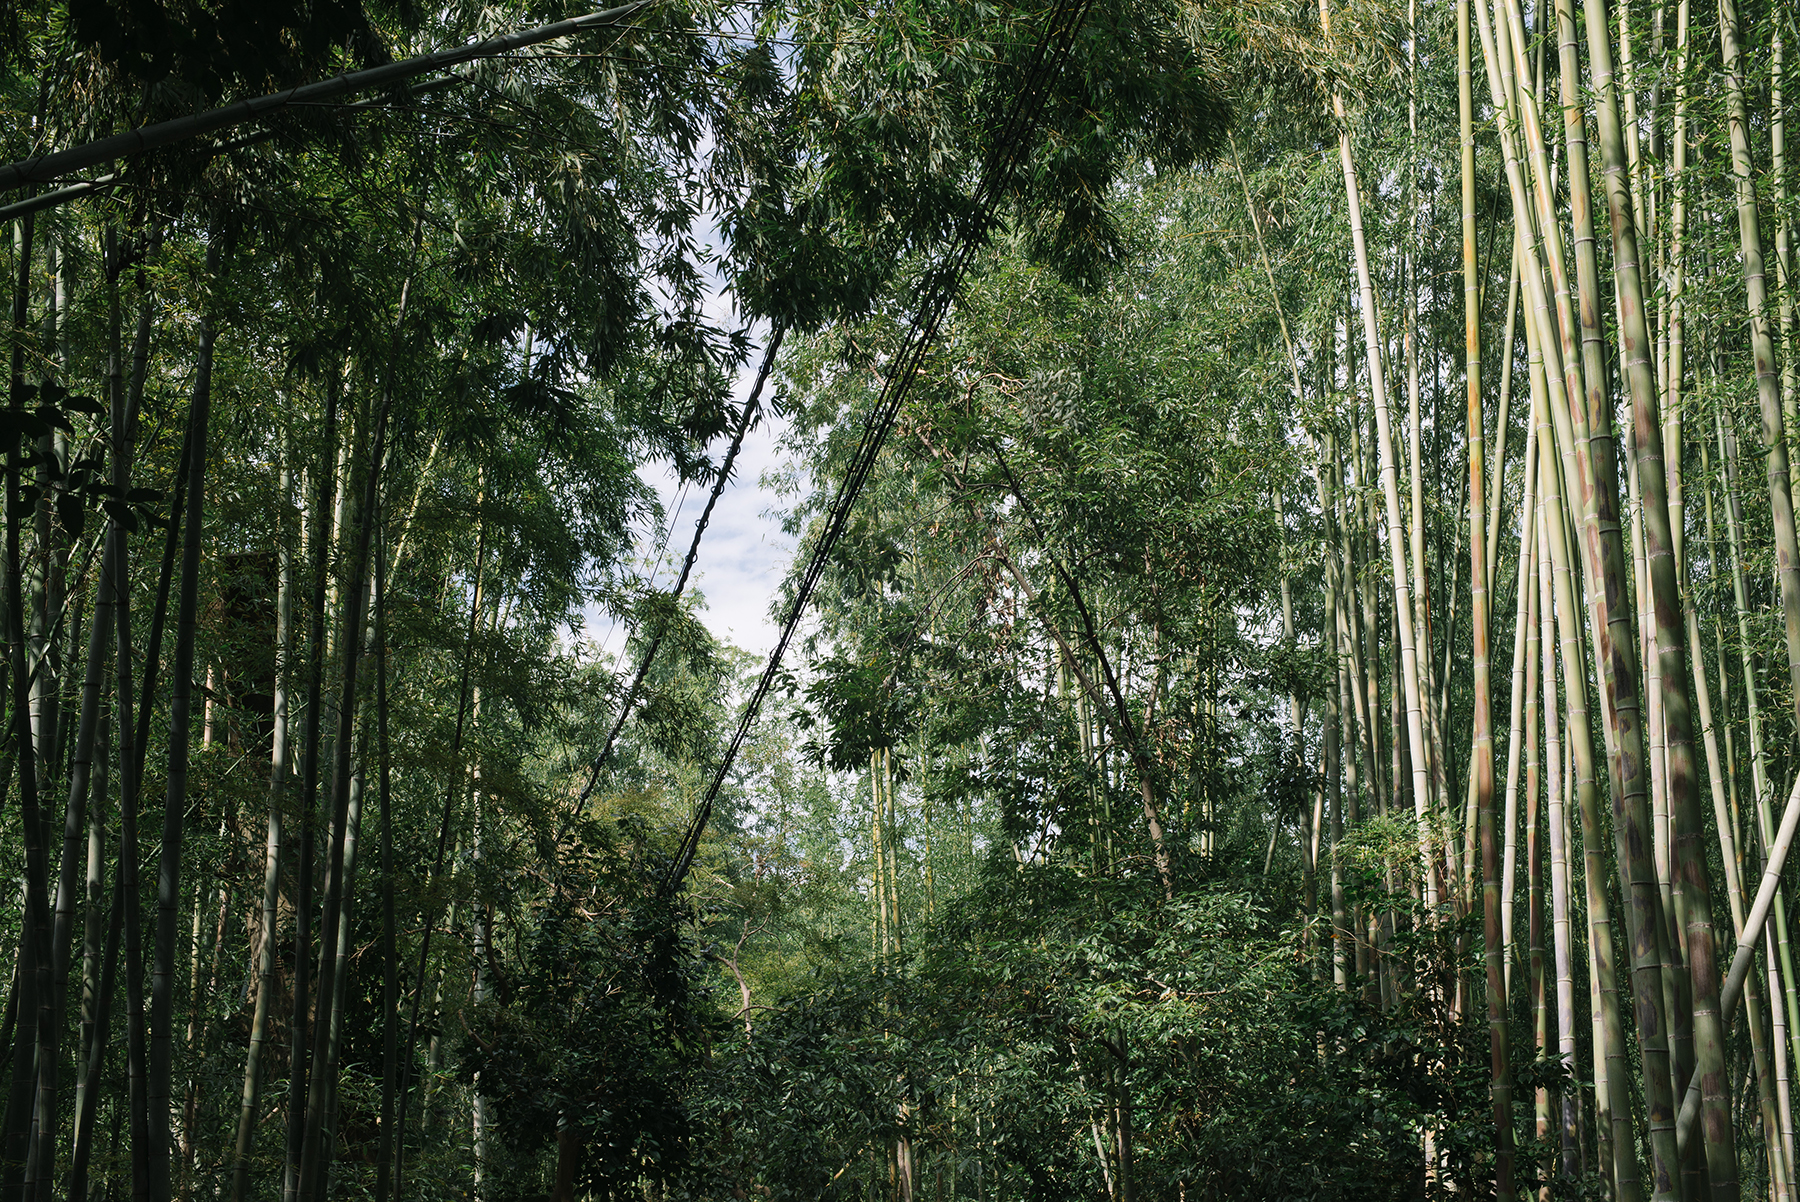 The bamboo forest wasn't actually a forest.